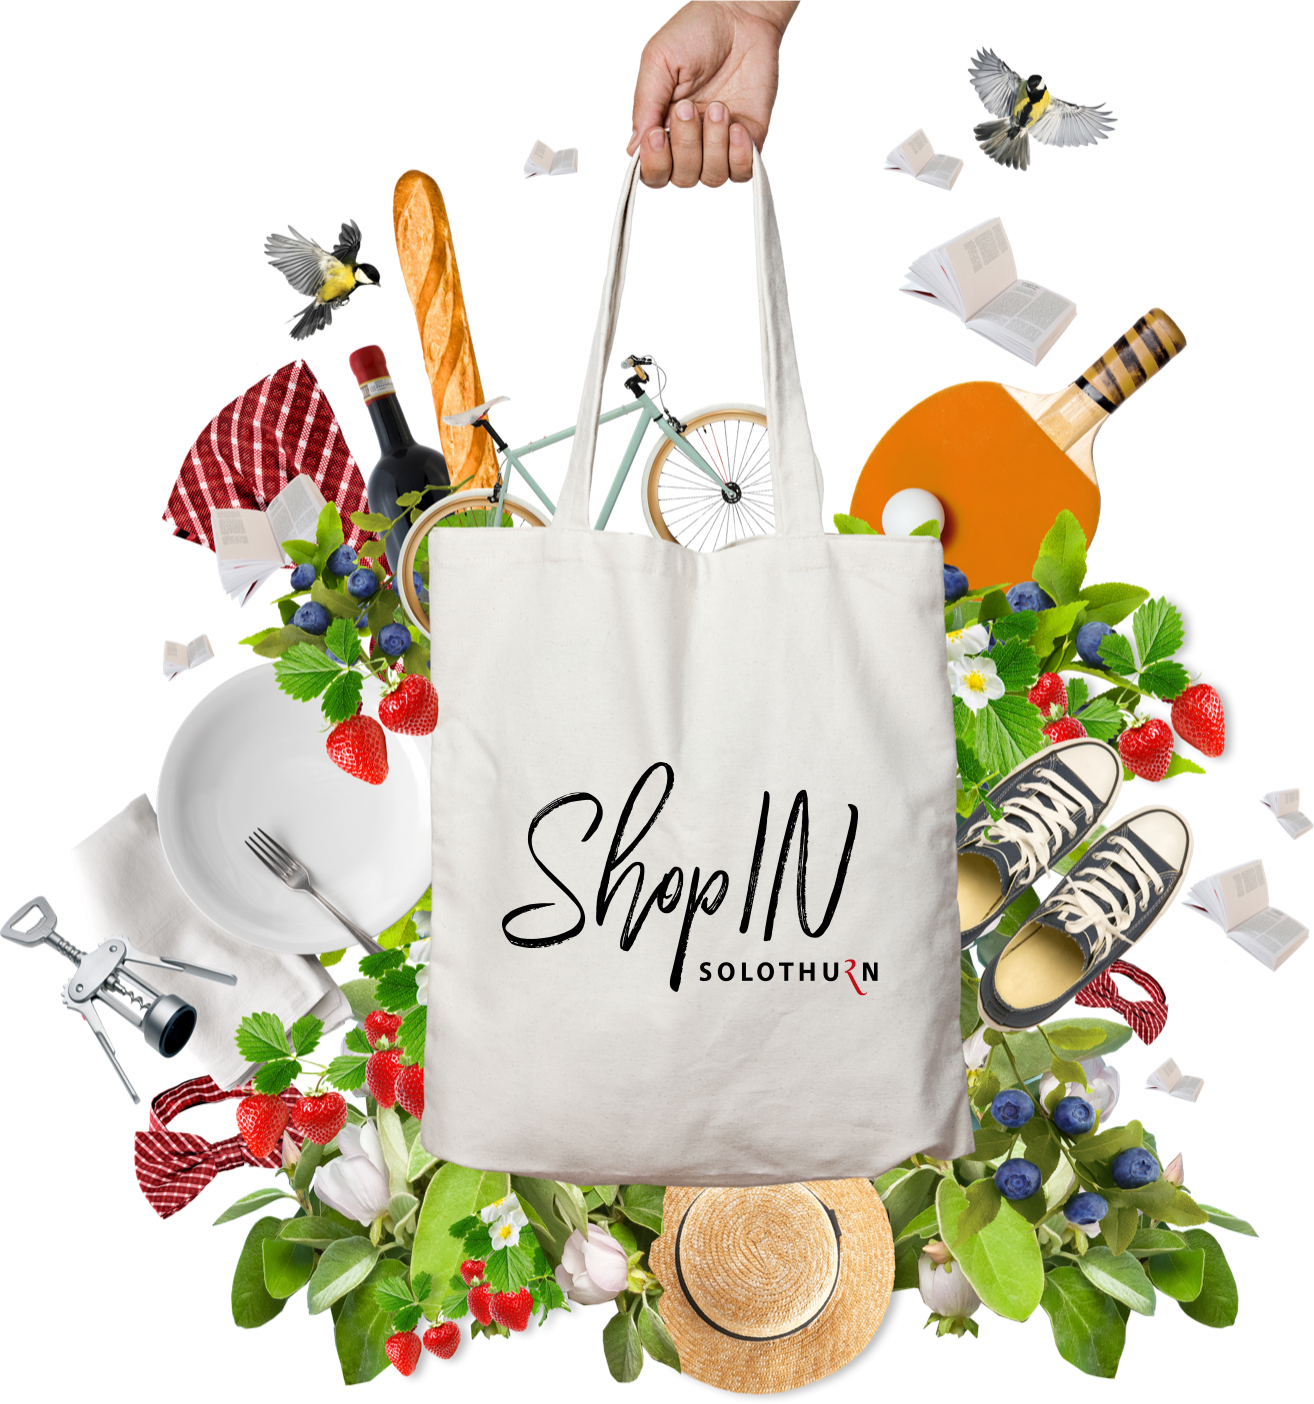 https://shopin-solothurn.ch/app/uploads/2020/06/shopin-solothurn-tasche.png